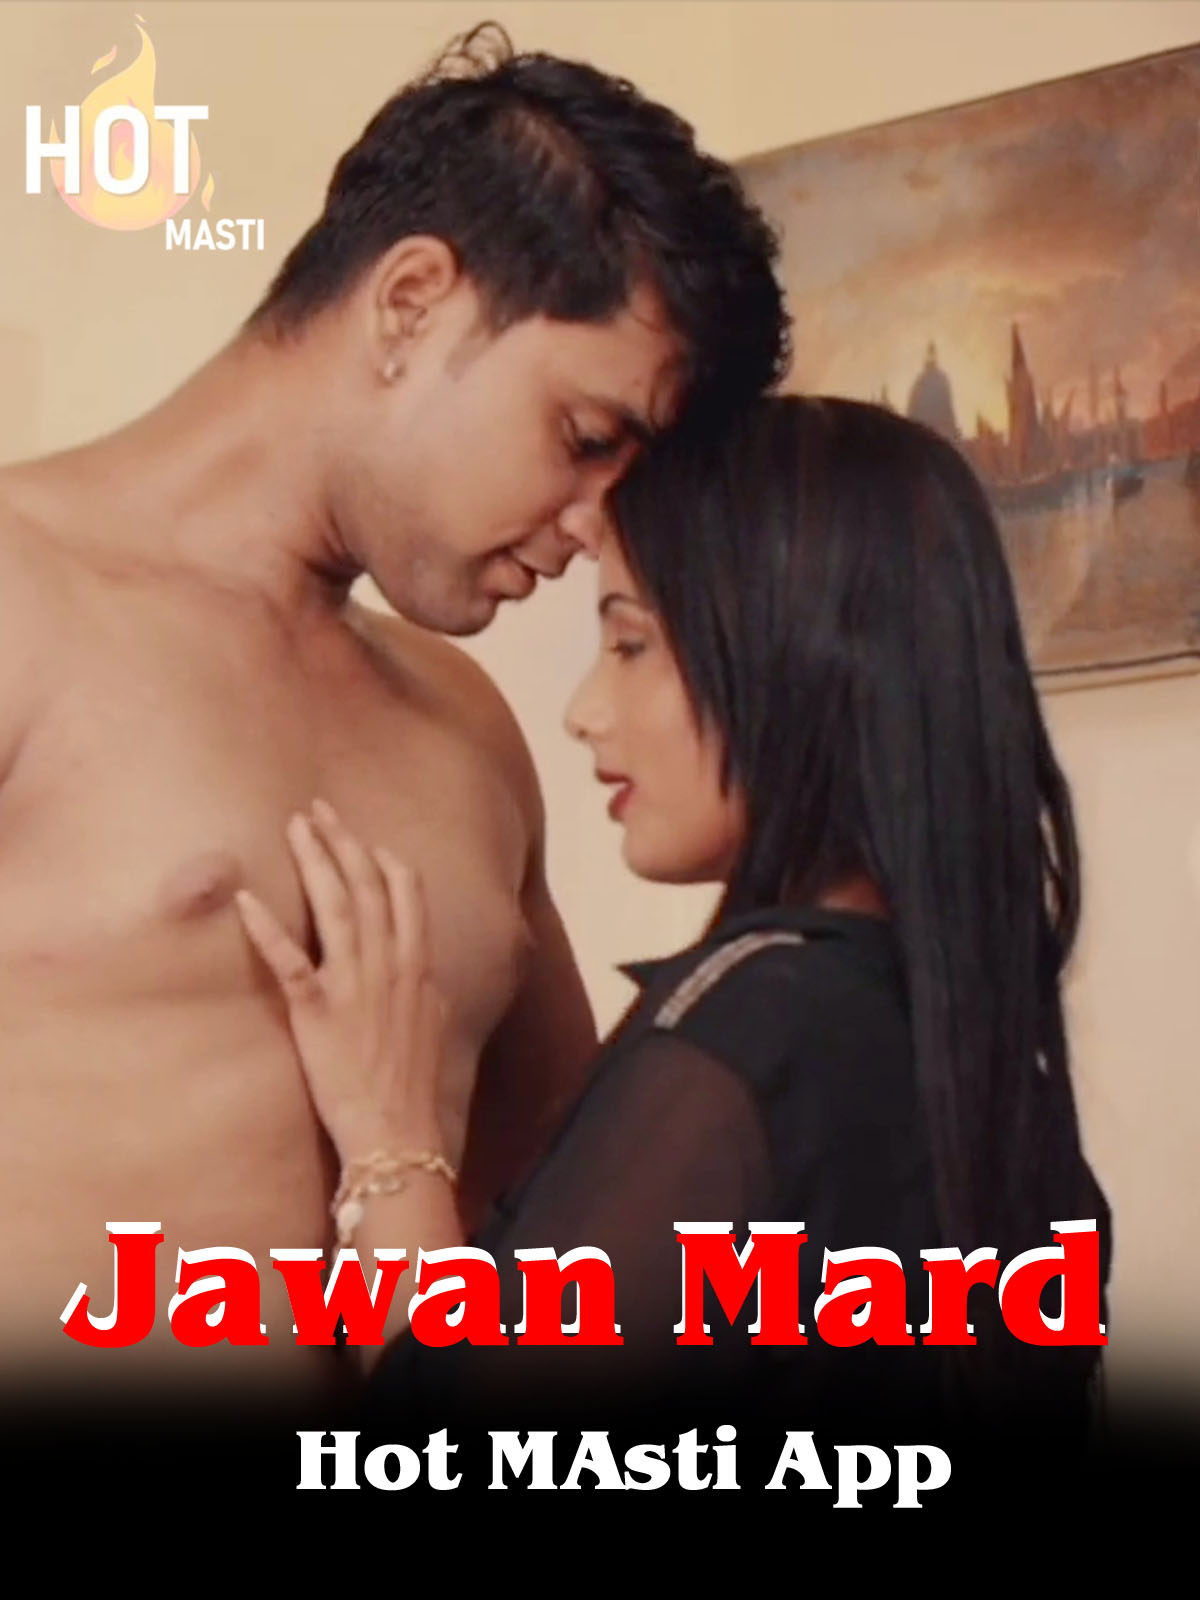 18+ Jawan Mard 2020 S01E01 Hindi Hotmasti Web Series 720p HDRip 180MB x264 AAC